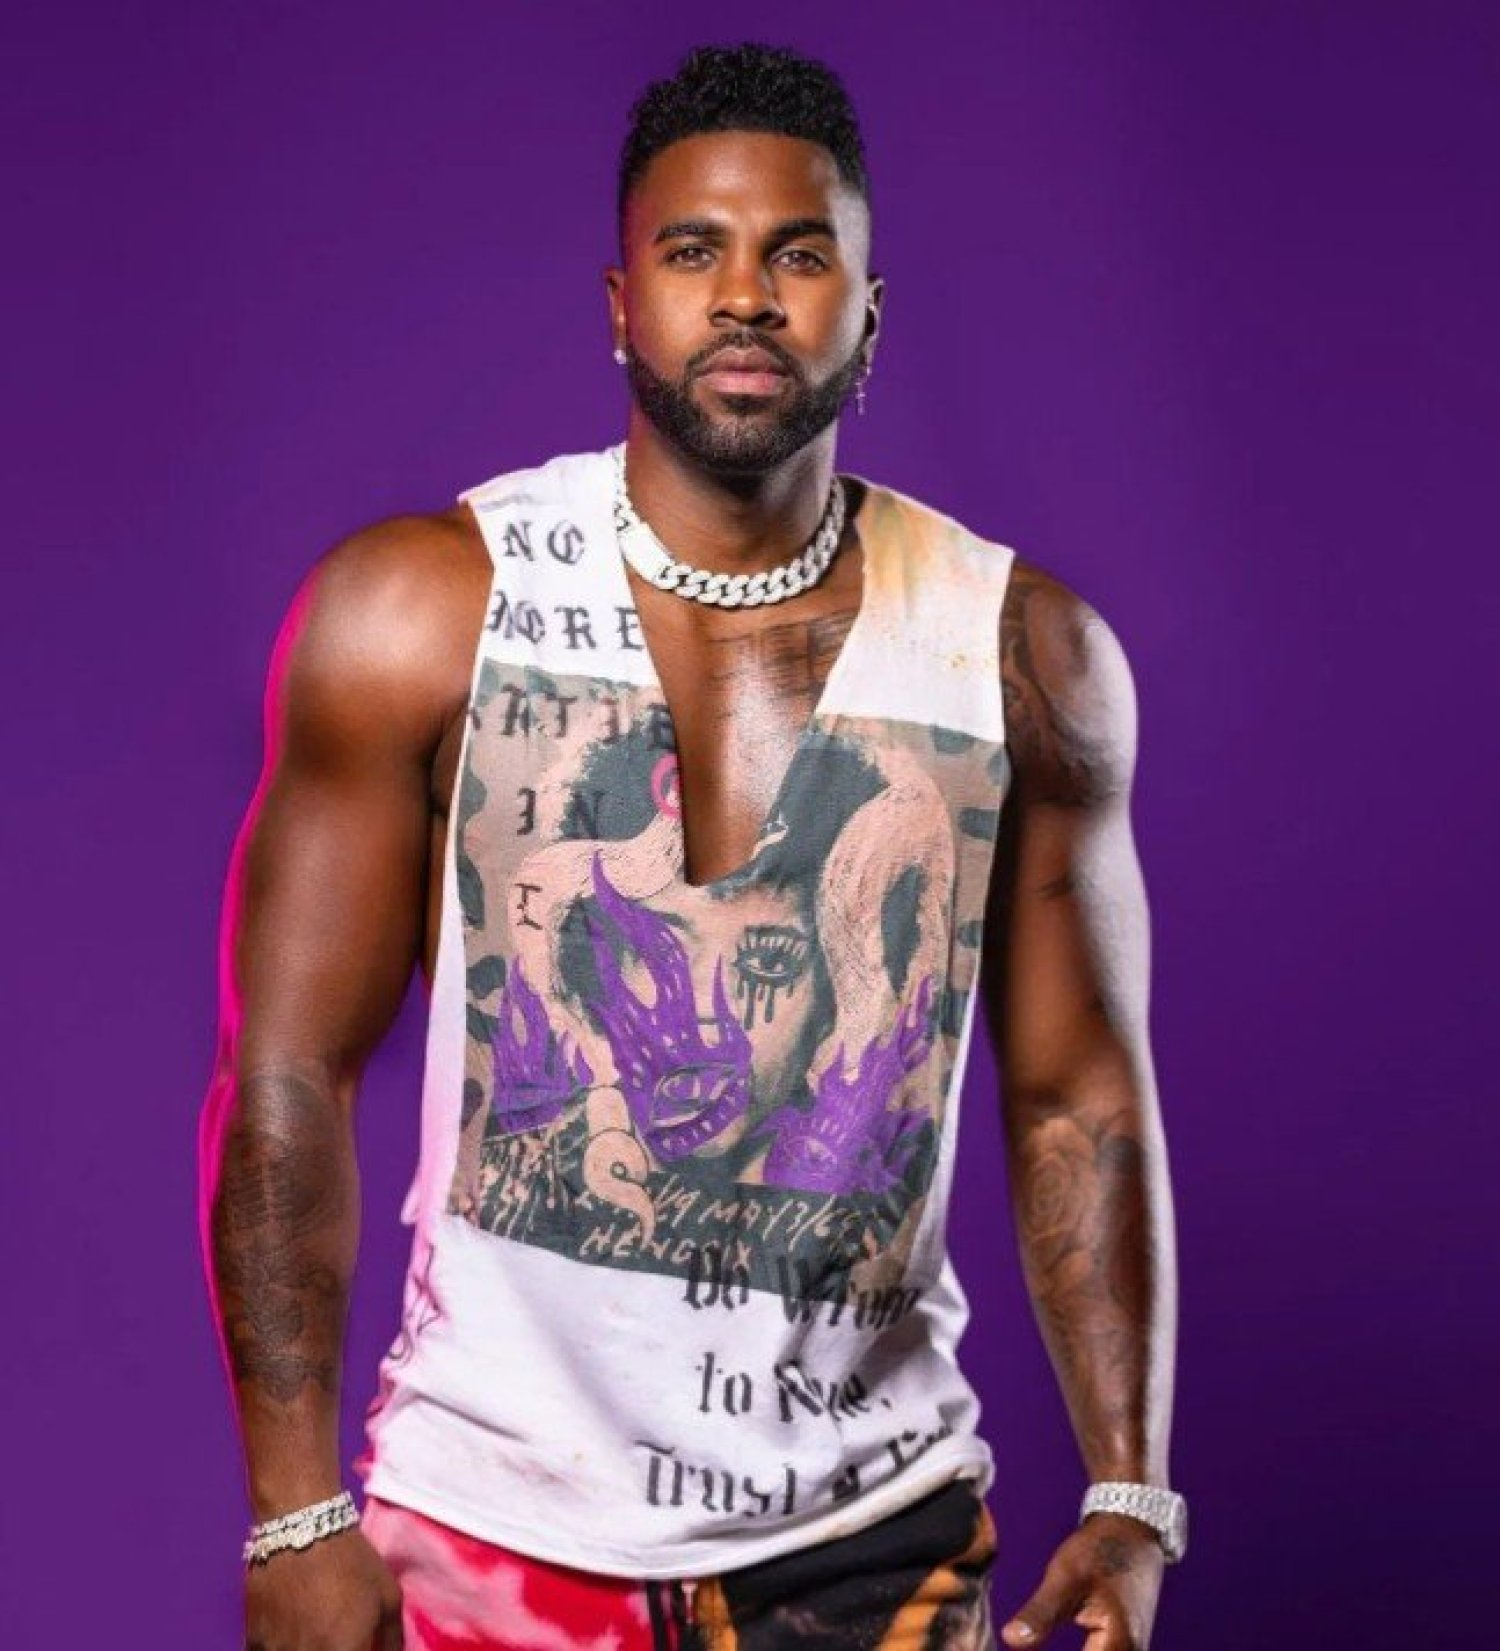 DOWNLOAD MP3: Jason Derulo – Love Not War (The Tampa Beat Acoustic Audio)